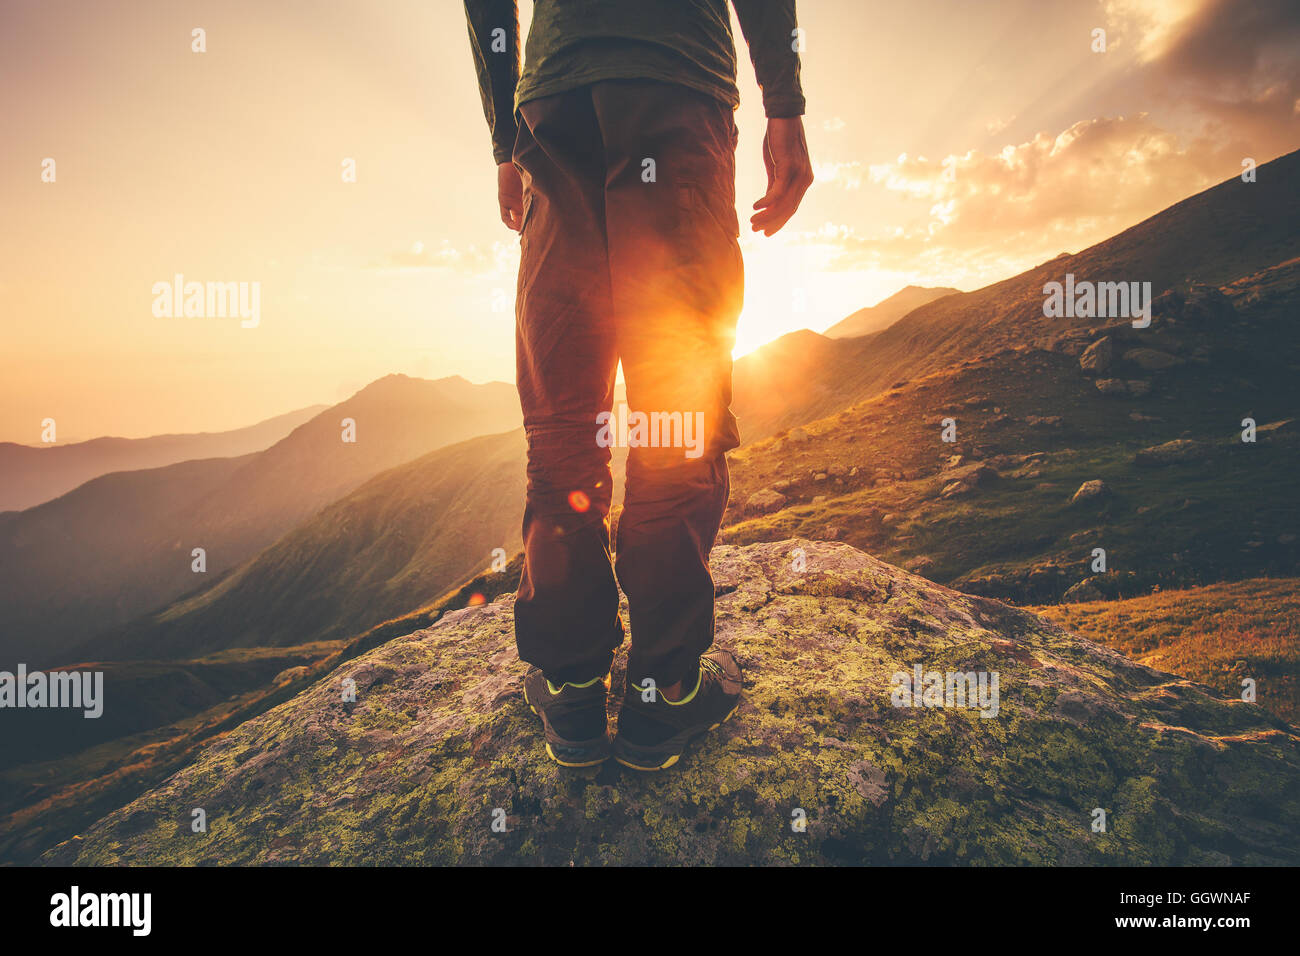 Young Man Traveler feet standing alone with sunset mountains on background Lifestyle Travel concept outdoor - Stock Image